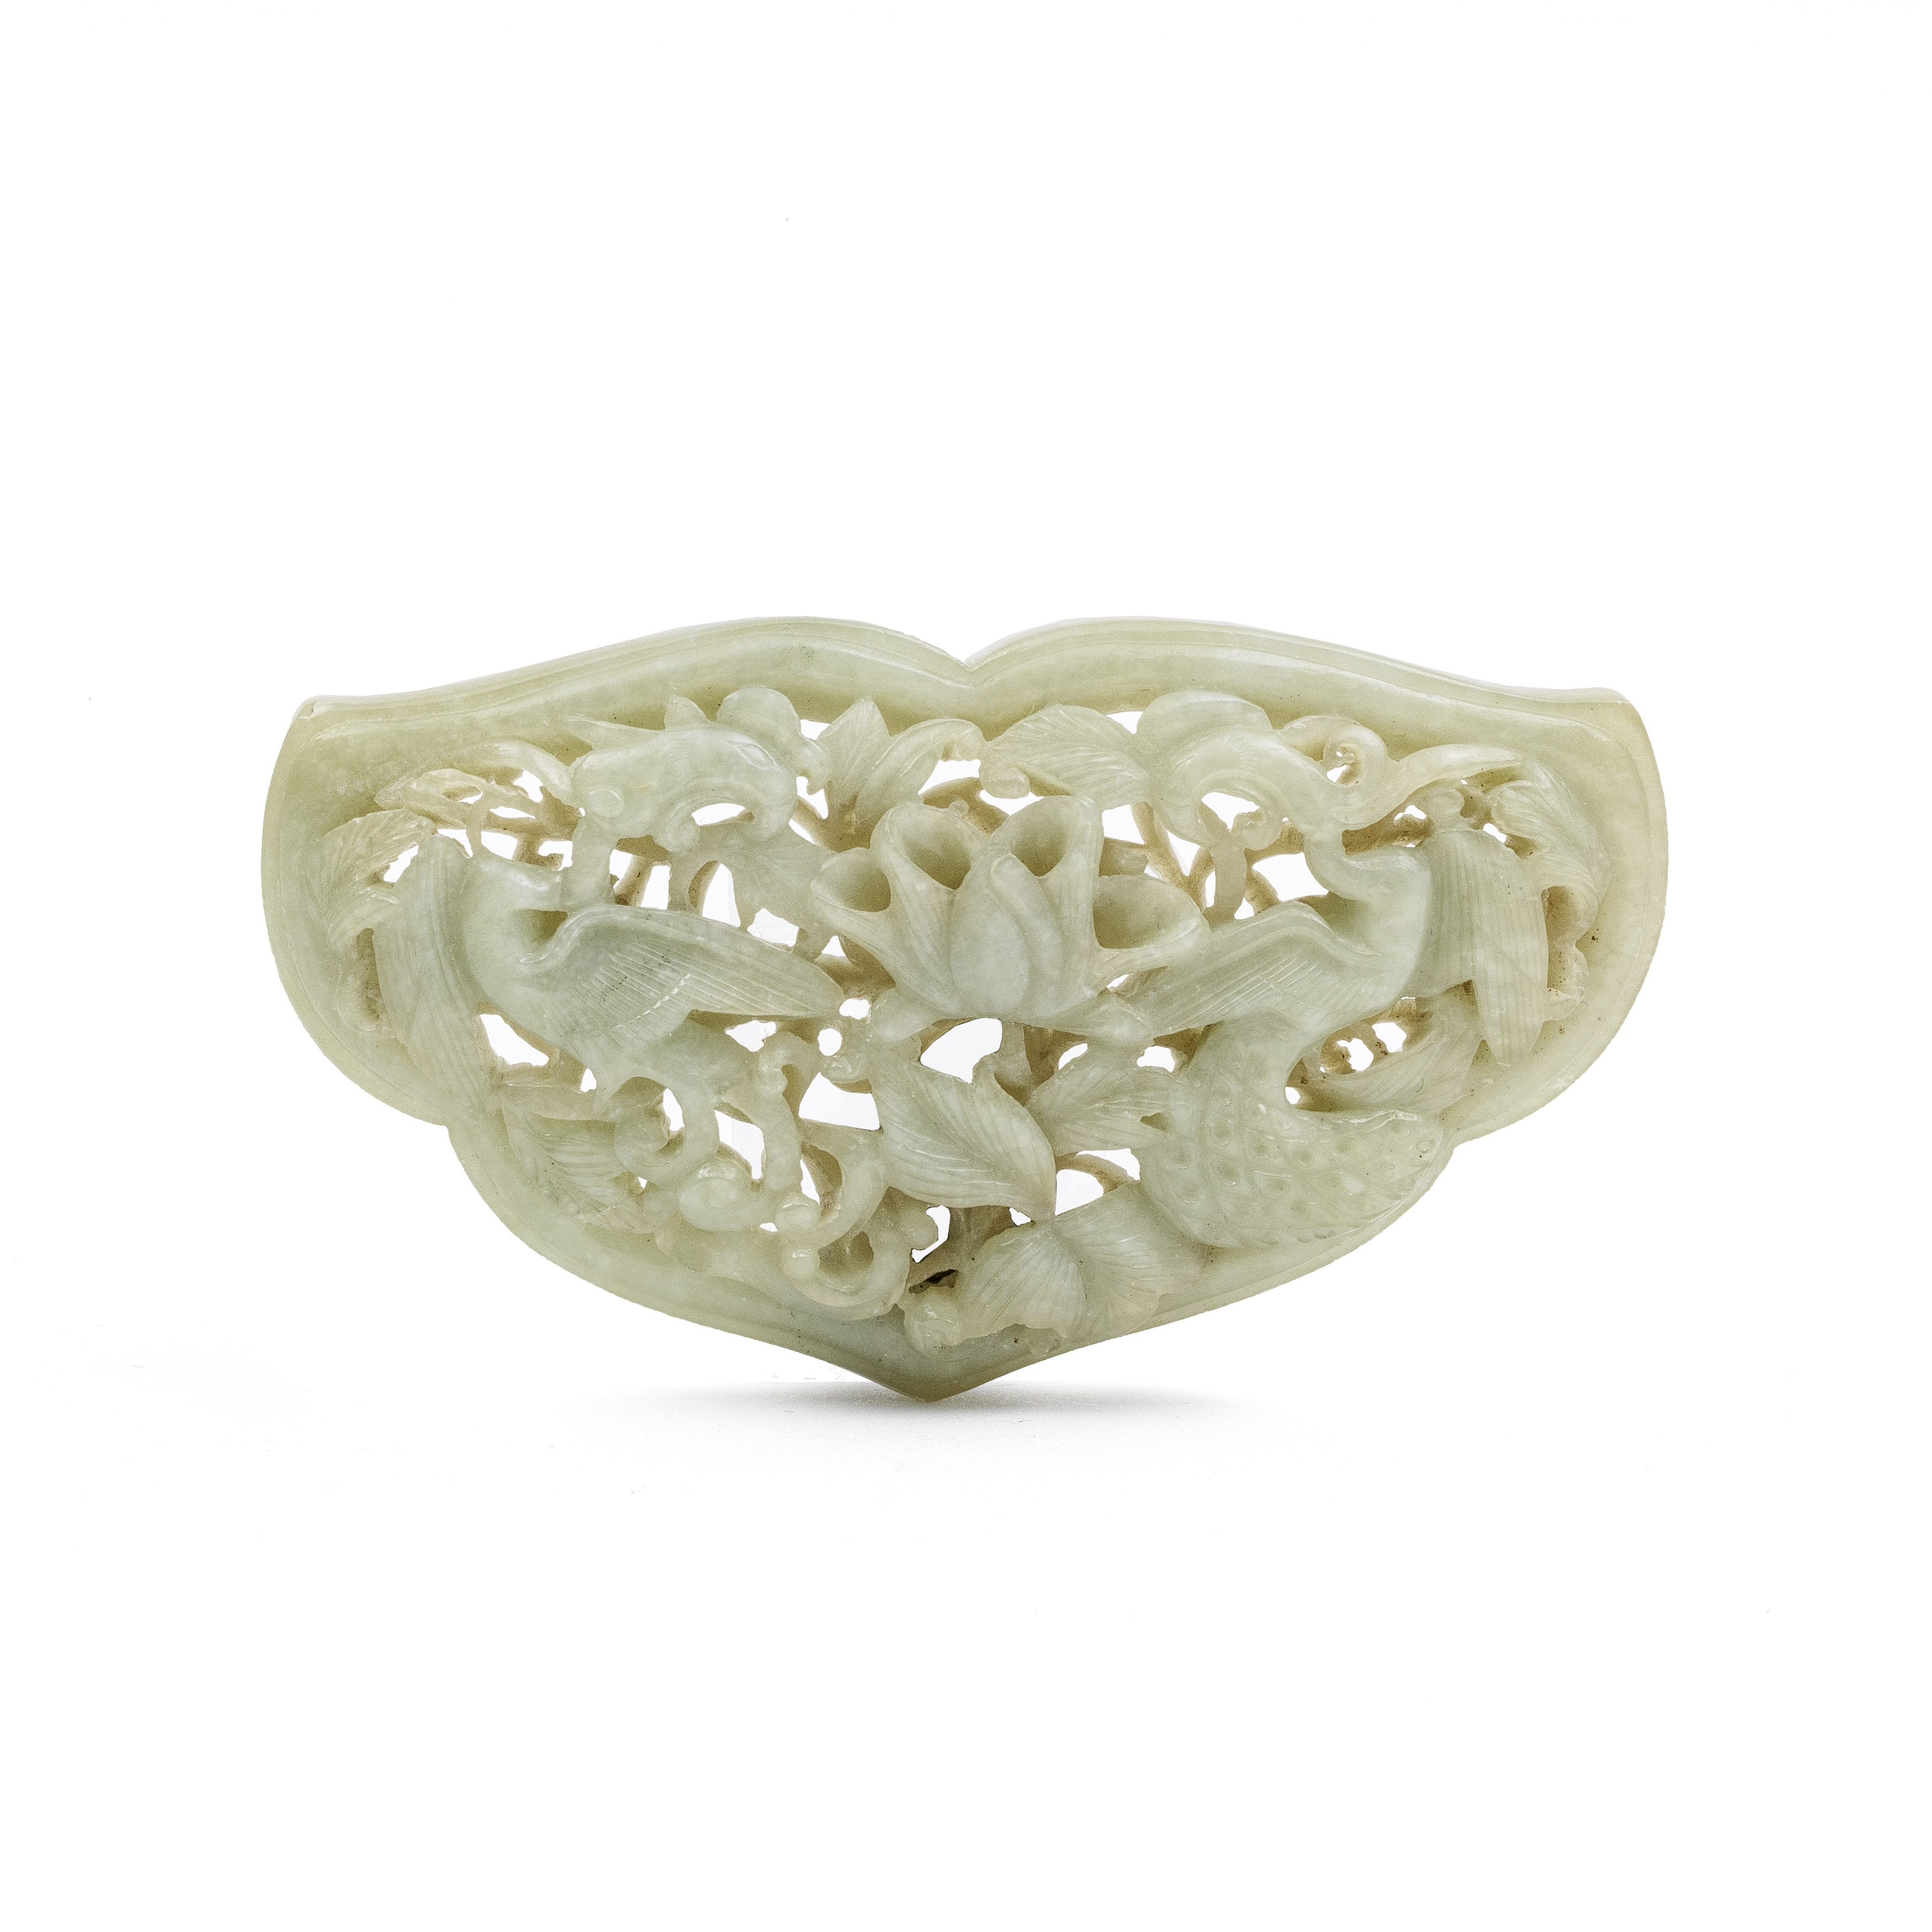 A RETICULATED JADE RUYI-FORM PLAQUE Possibly Yuan Dynasty